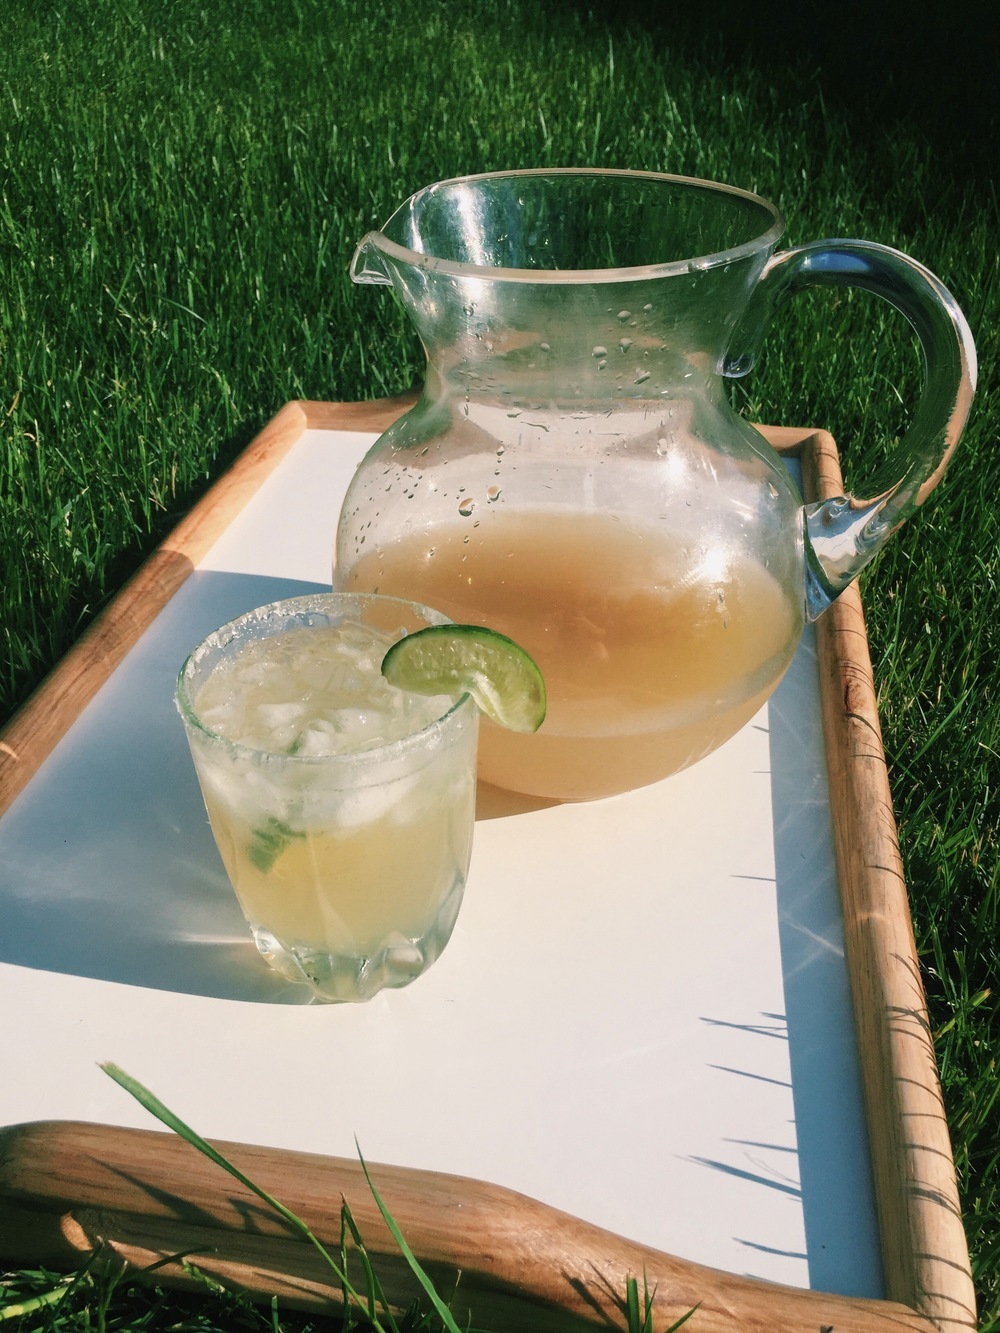 Cilantro Jalapeño Limeade, made by Megan Krementowski, is a favorite summer drink recommended by The Daily Campus Life section.